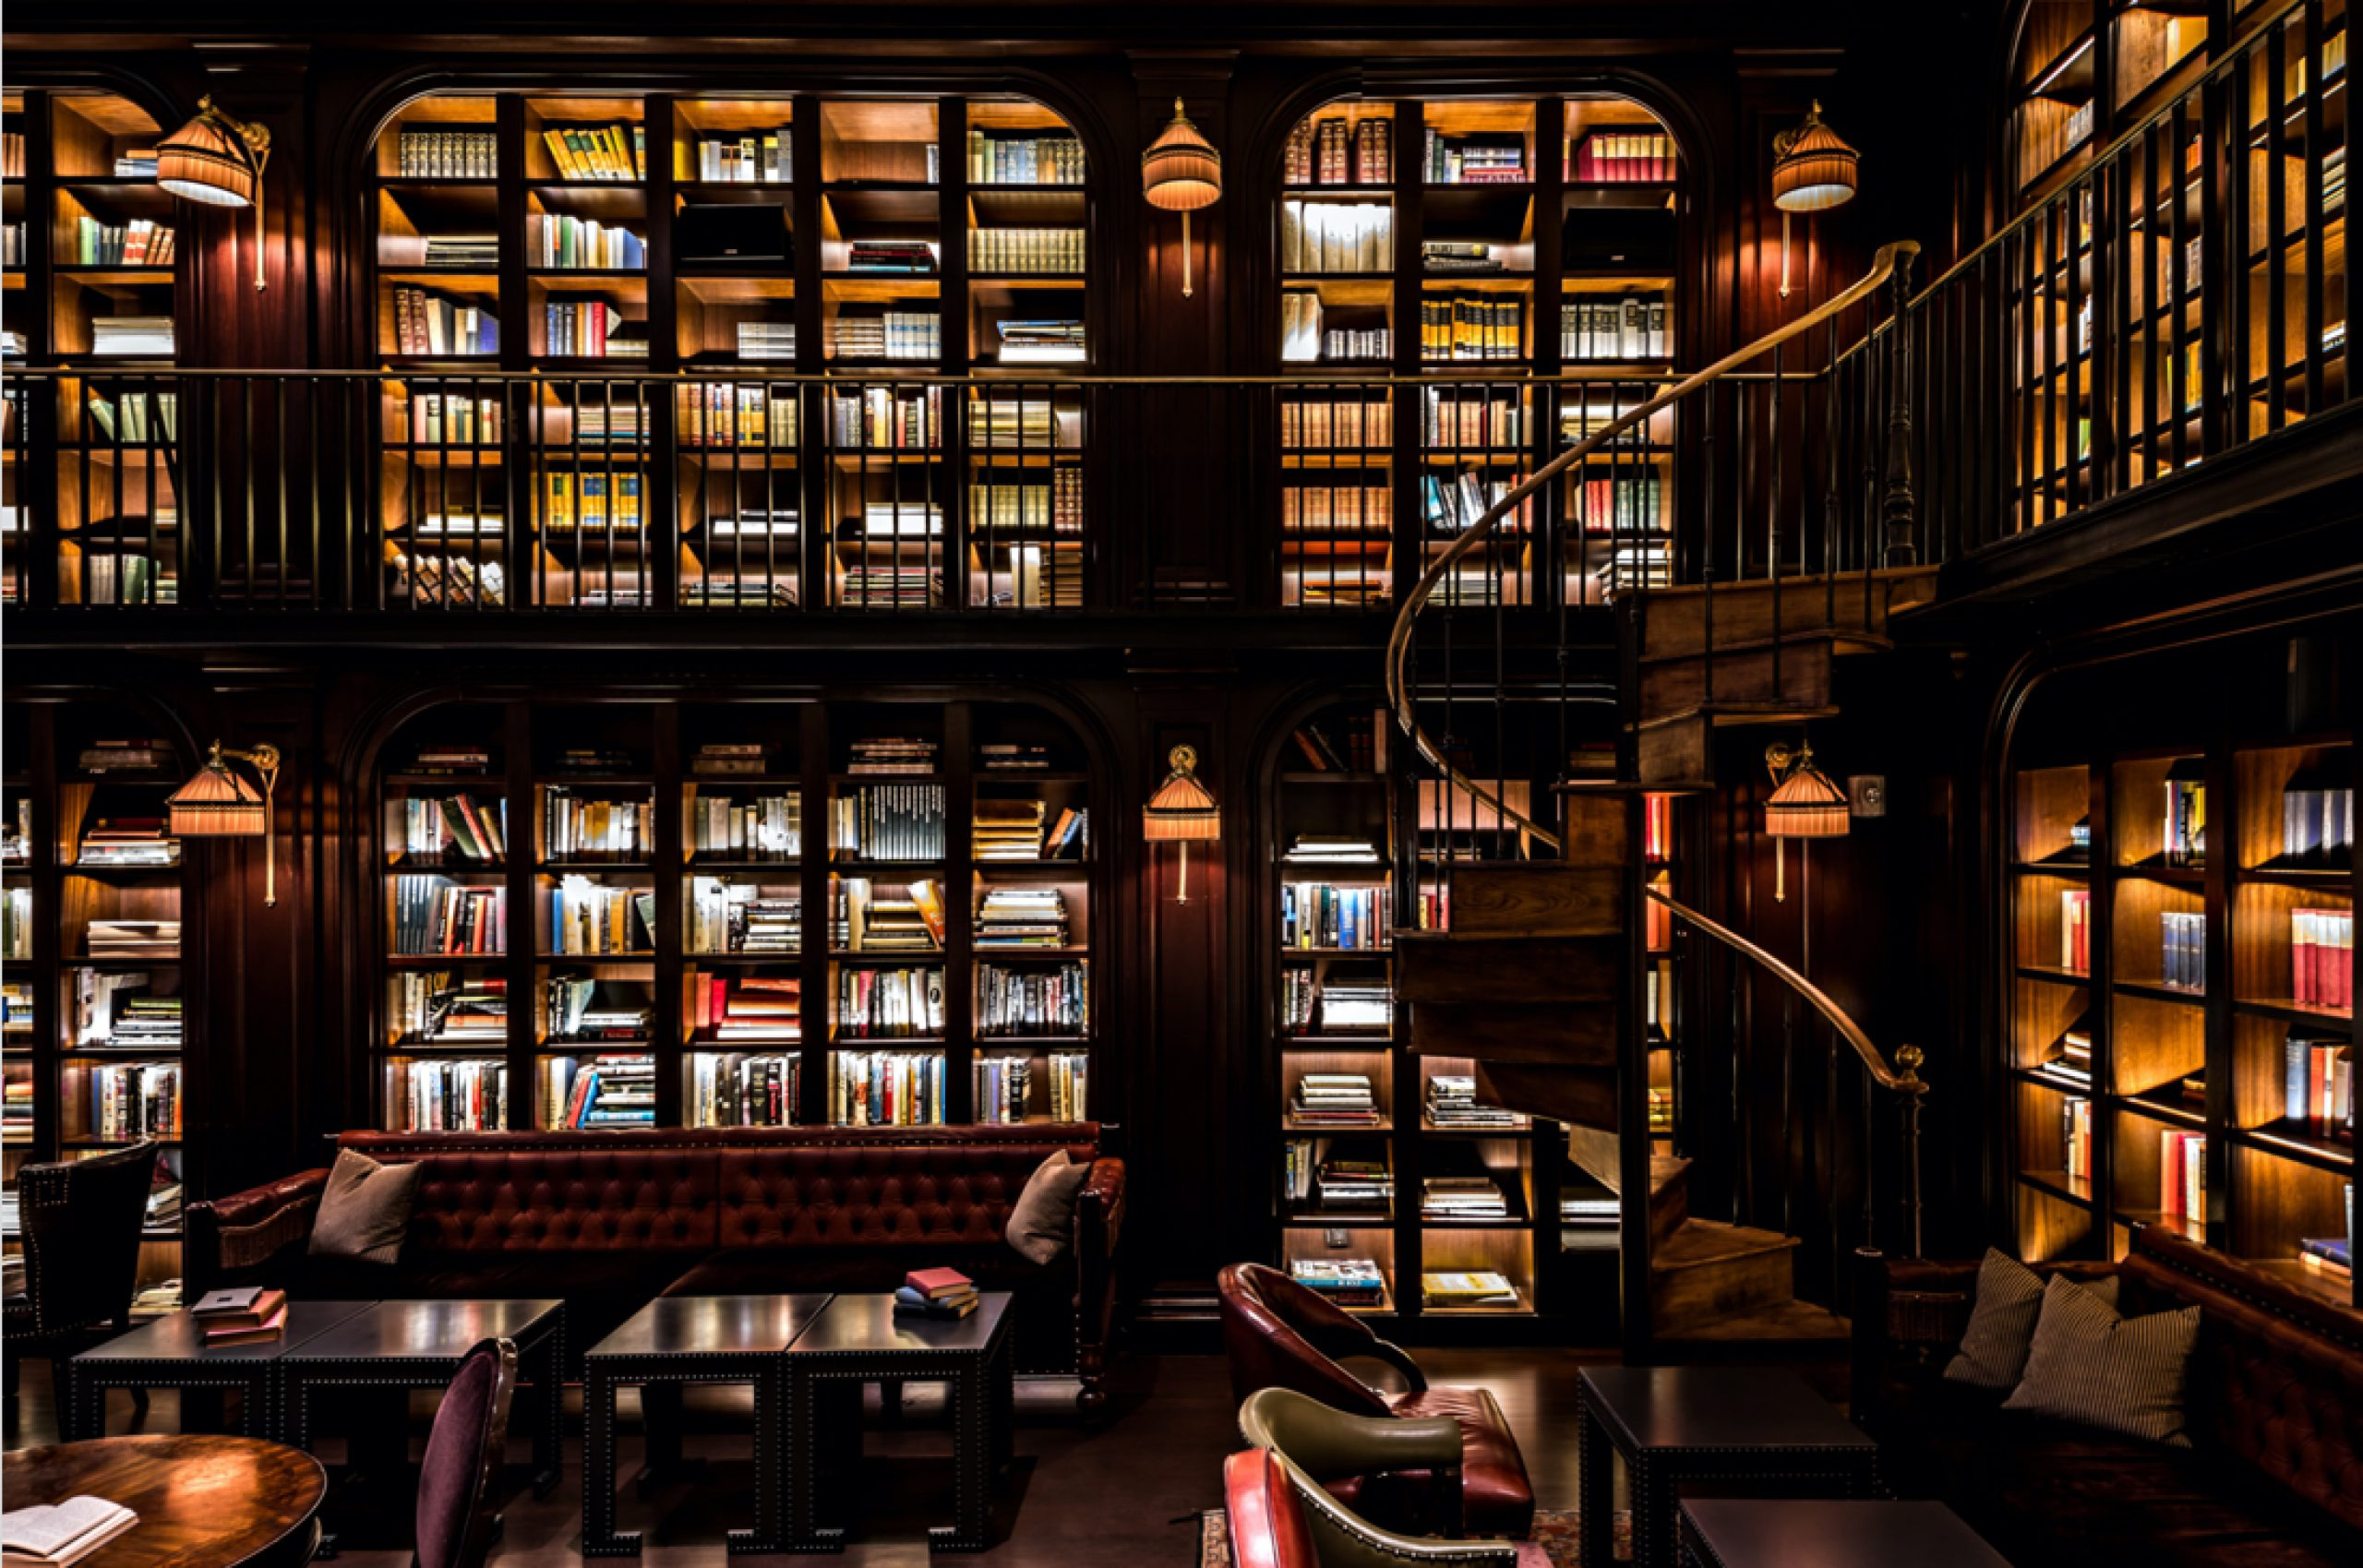 Library room with dimmed lighting and spiral staircase